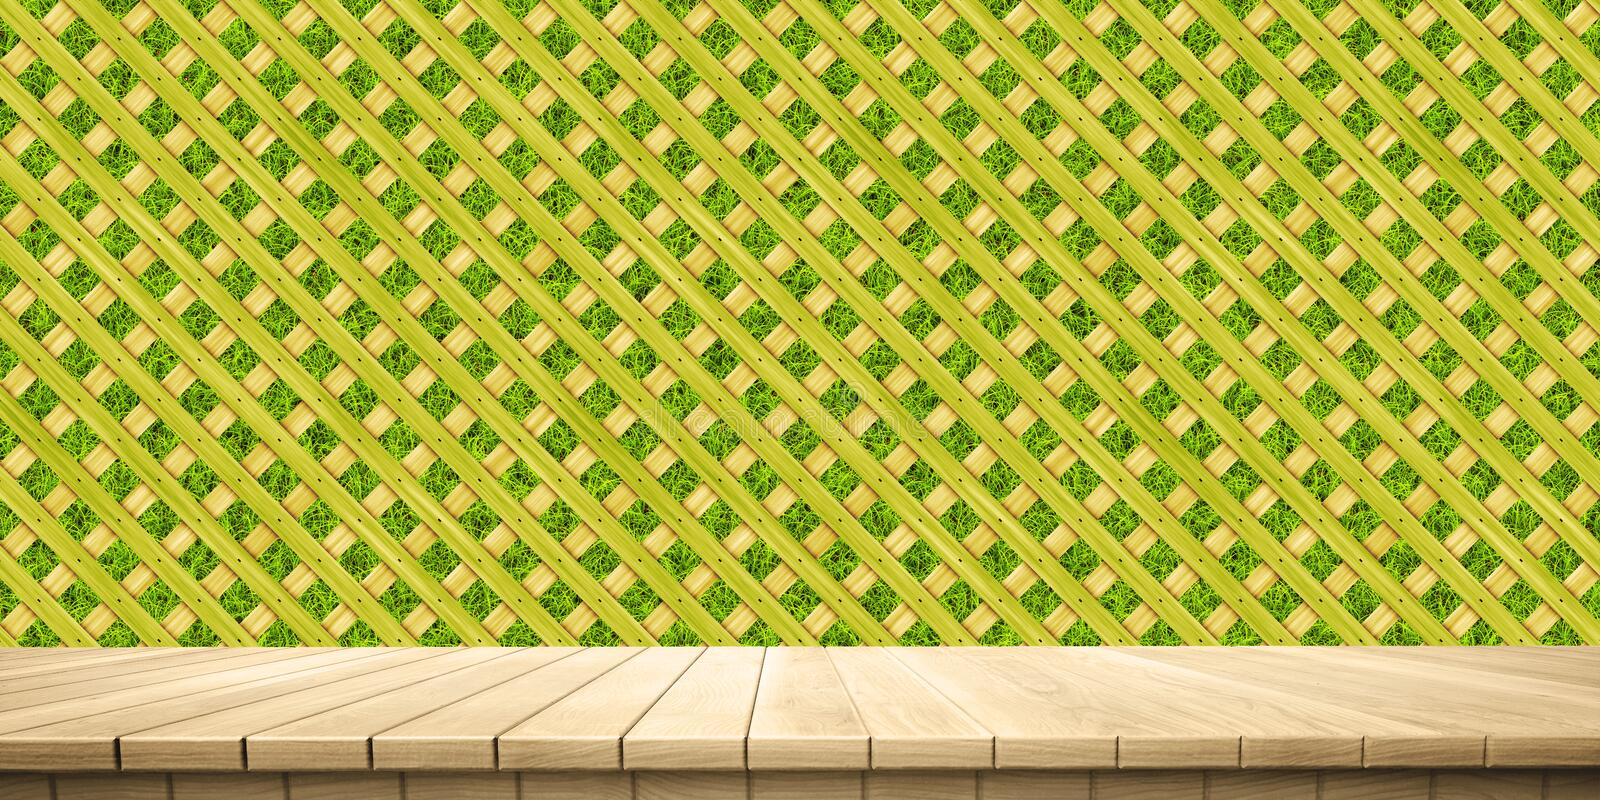 Closeup of colorful wooden platform and fence/railing background, front view. High-resolution 3D CG rendering illustration stock illustration